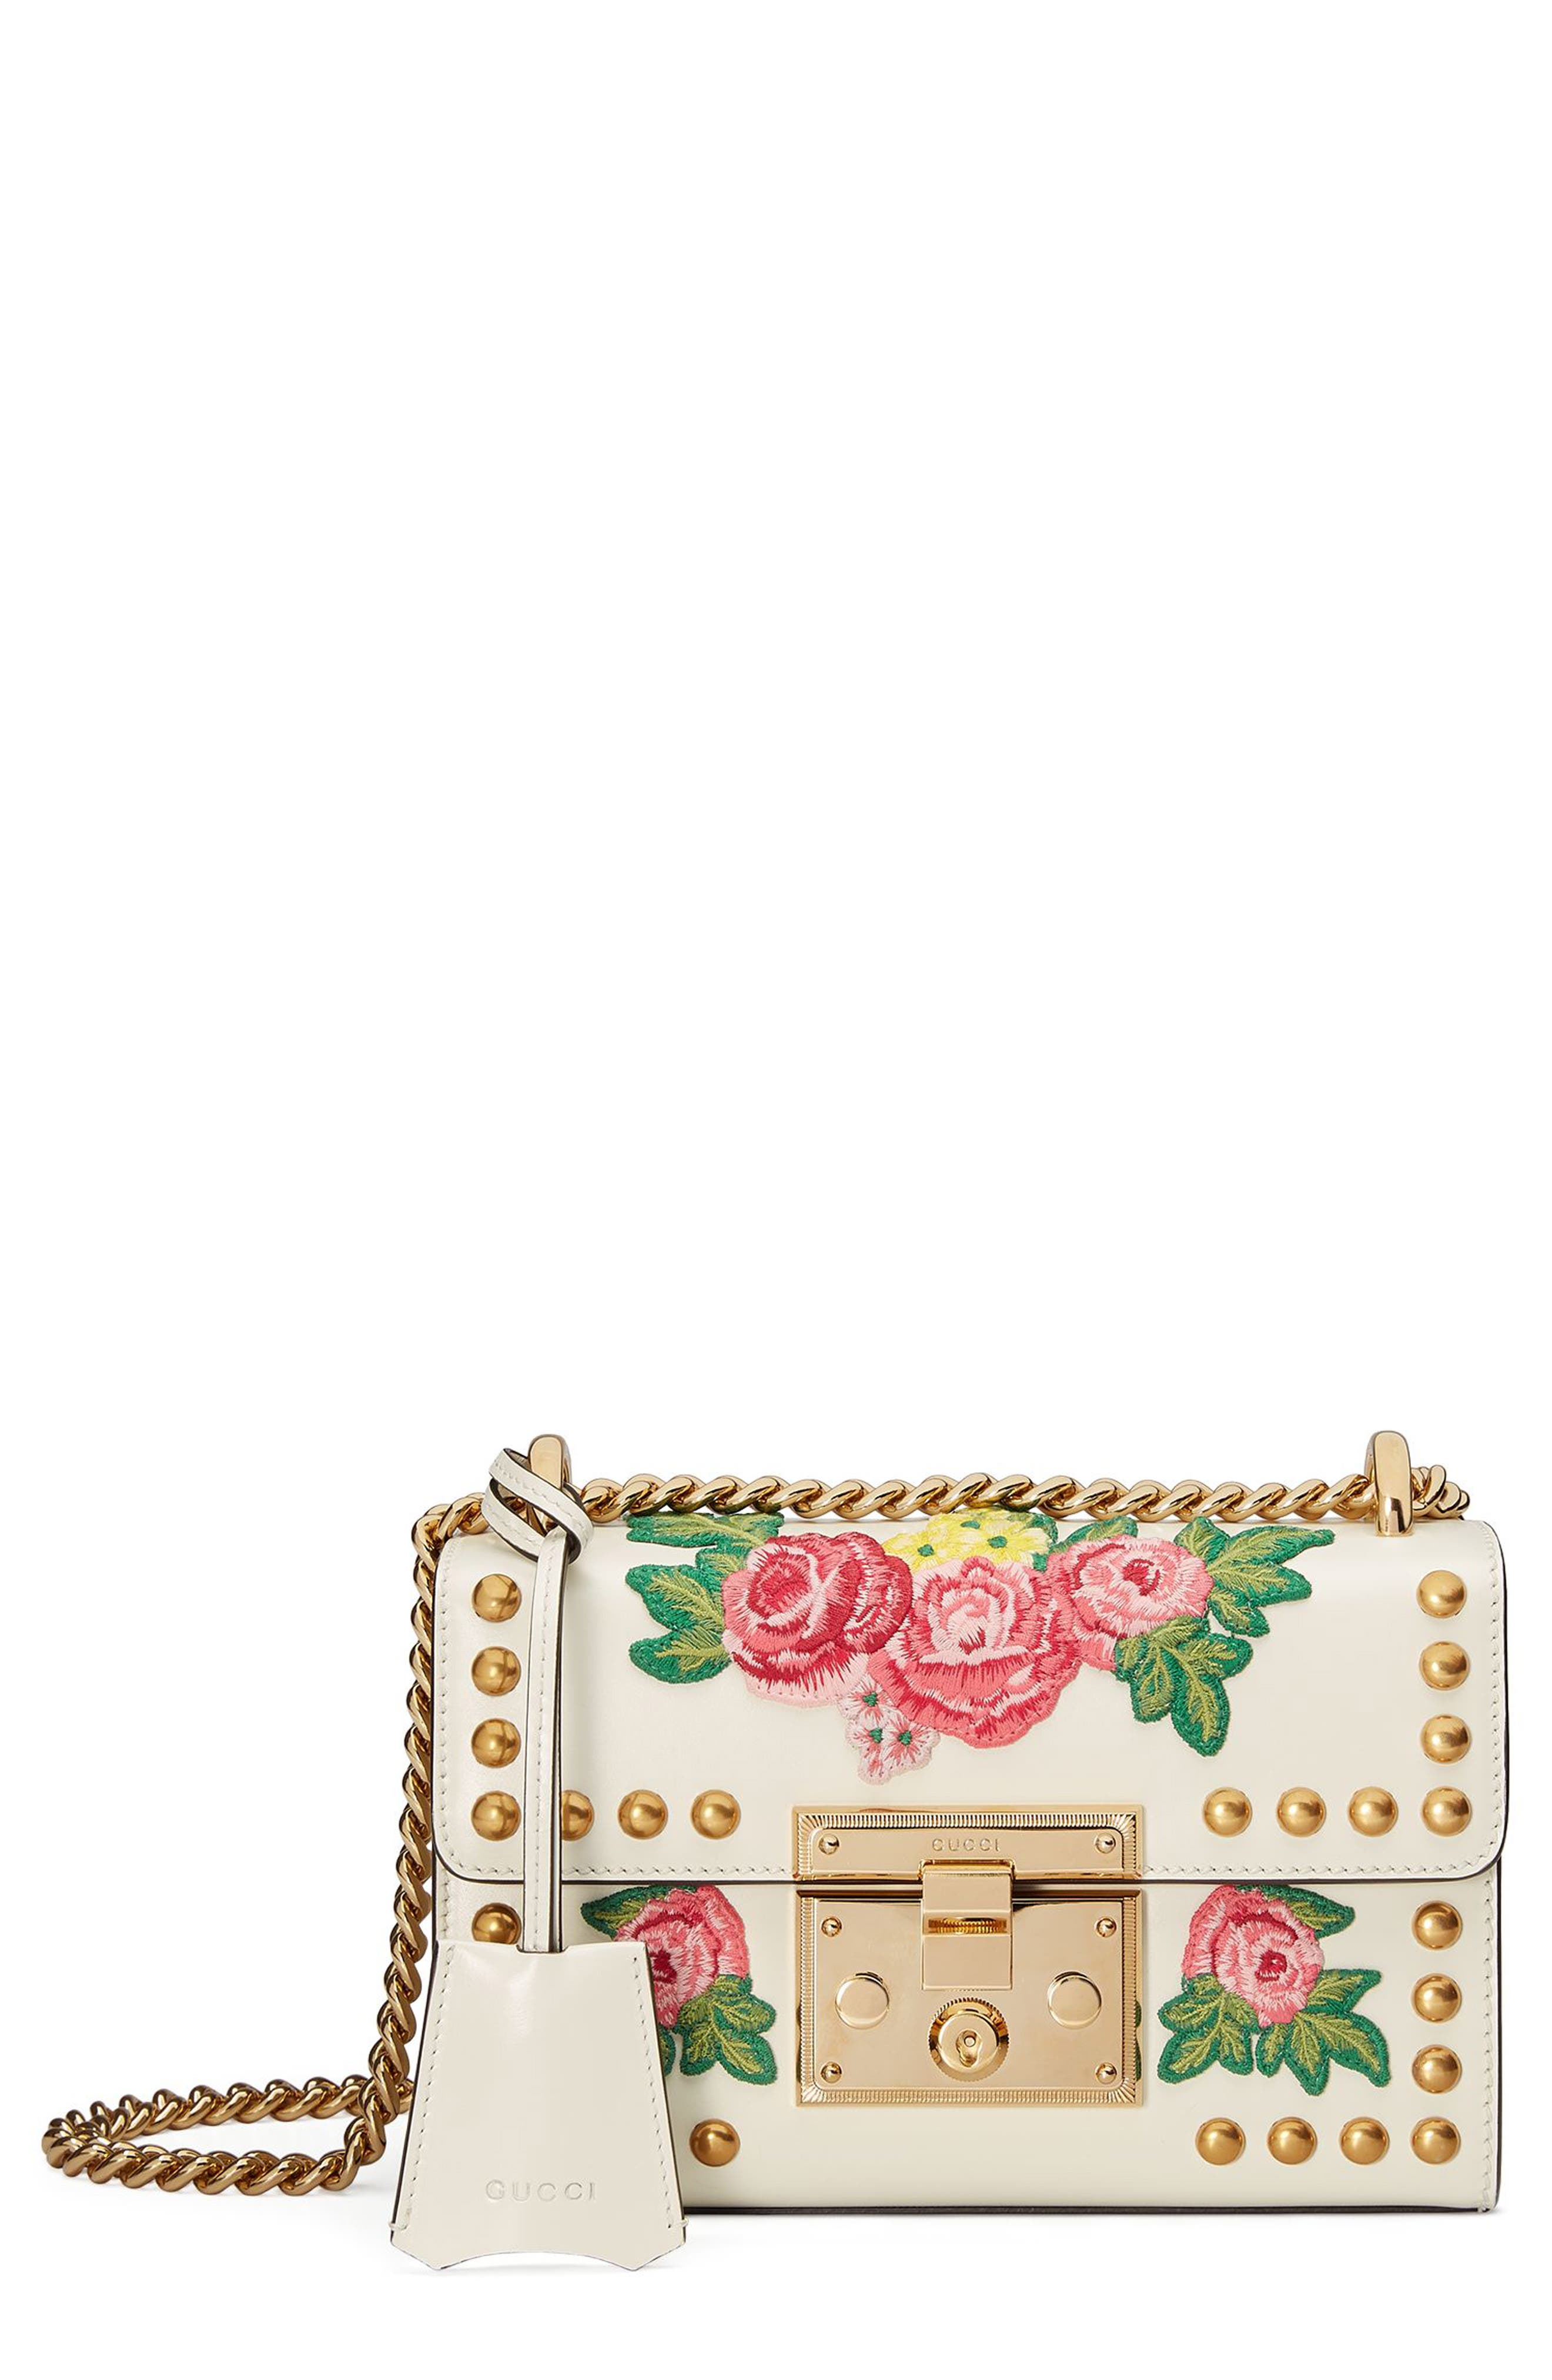 Alternate Image 1 Selected - Gucci Small Padlock Embroidered Leather Shoulder Bag